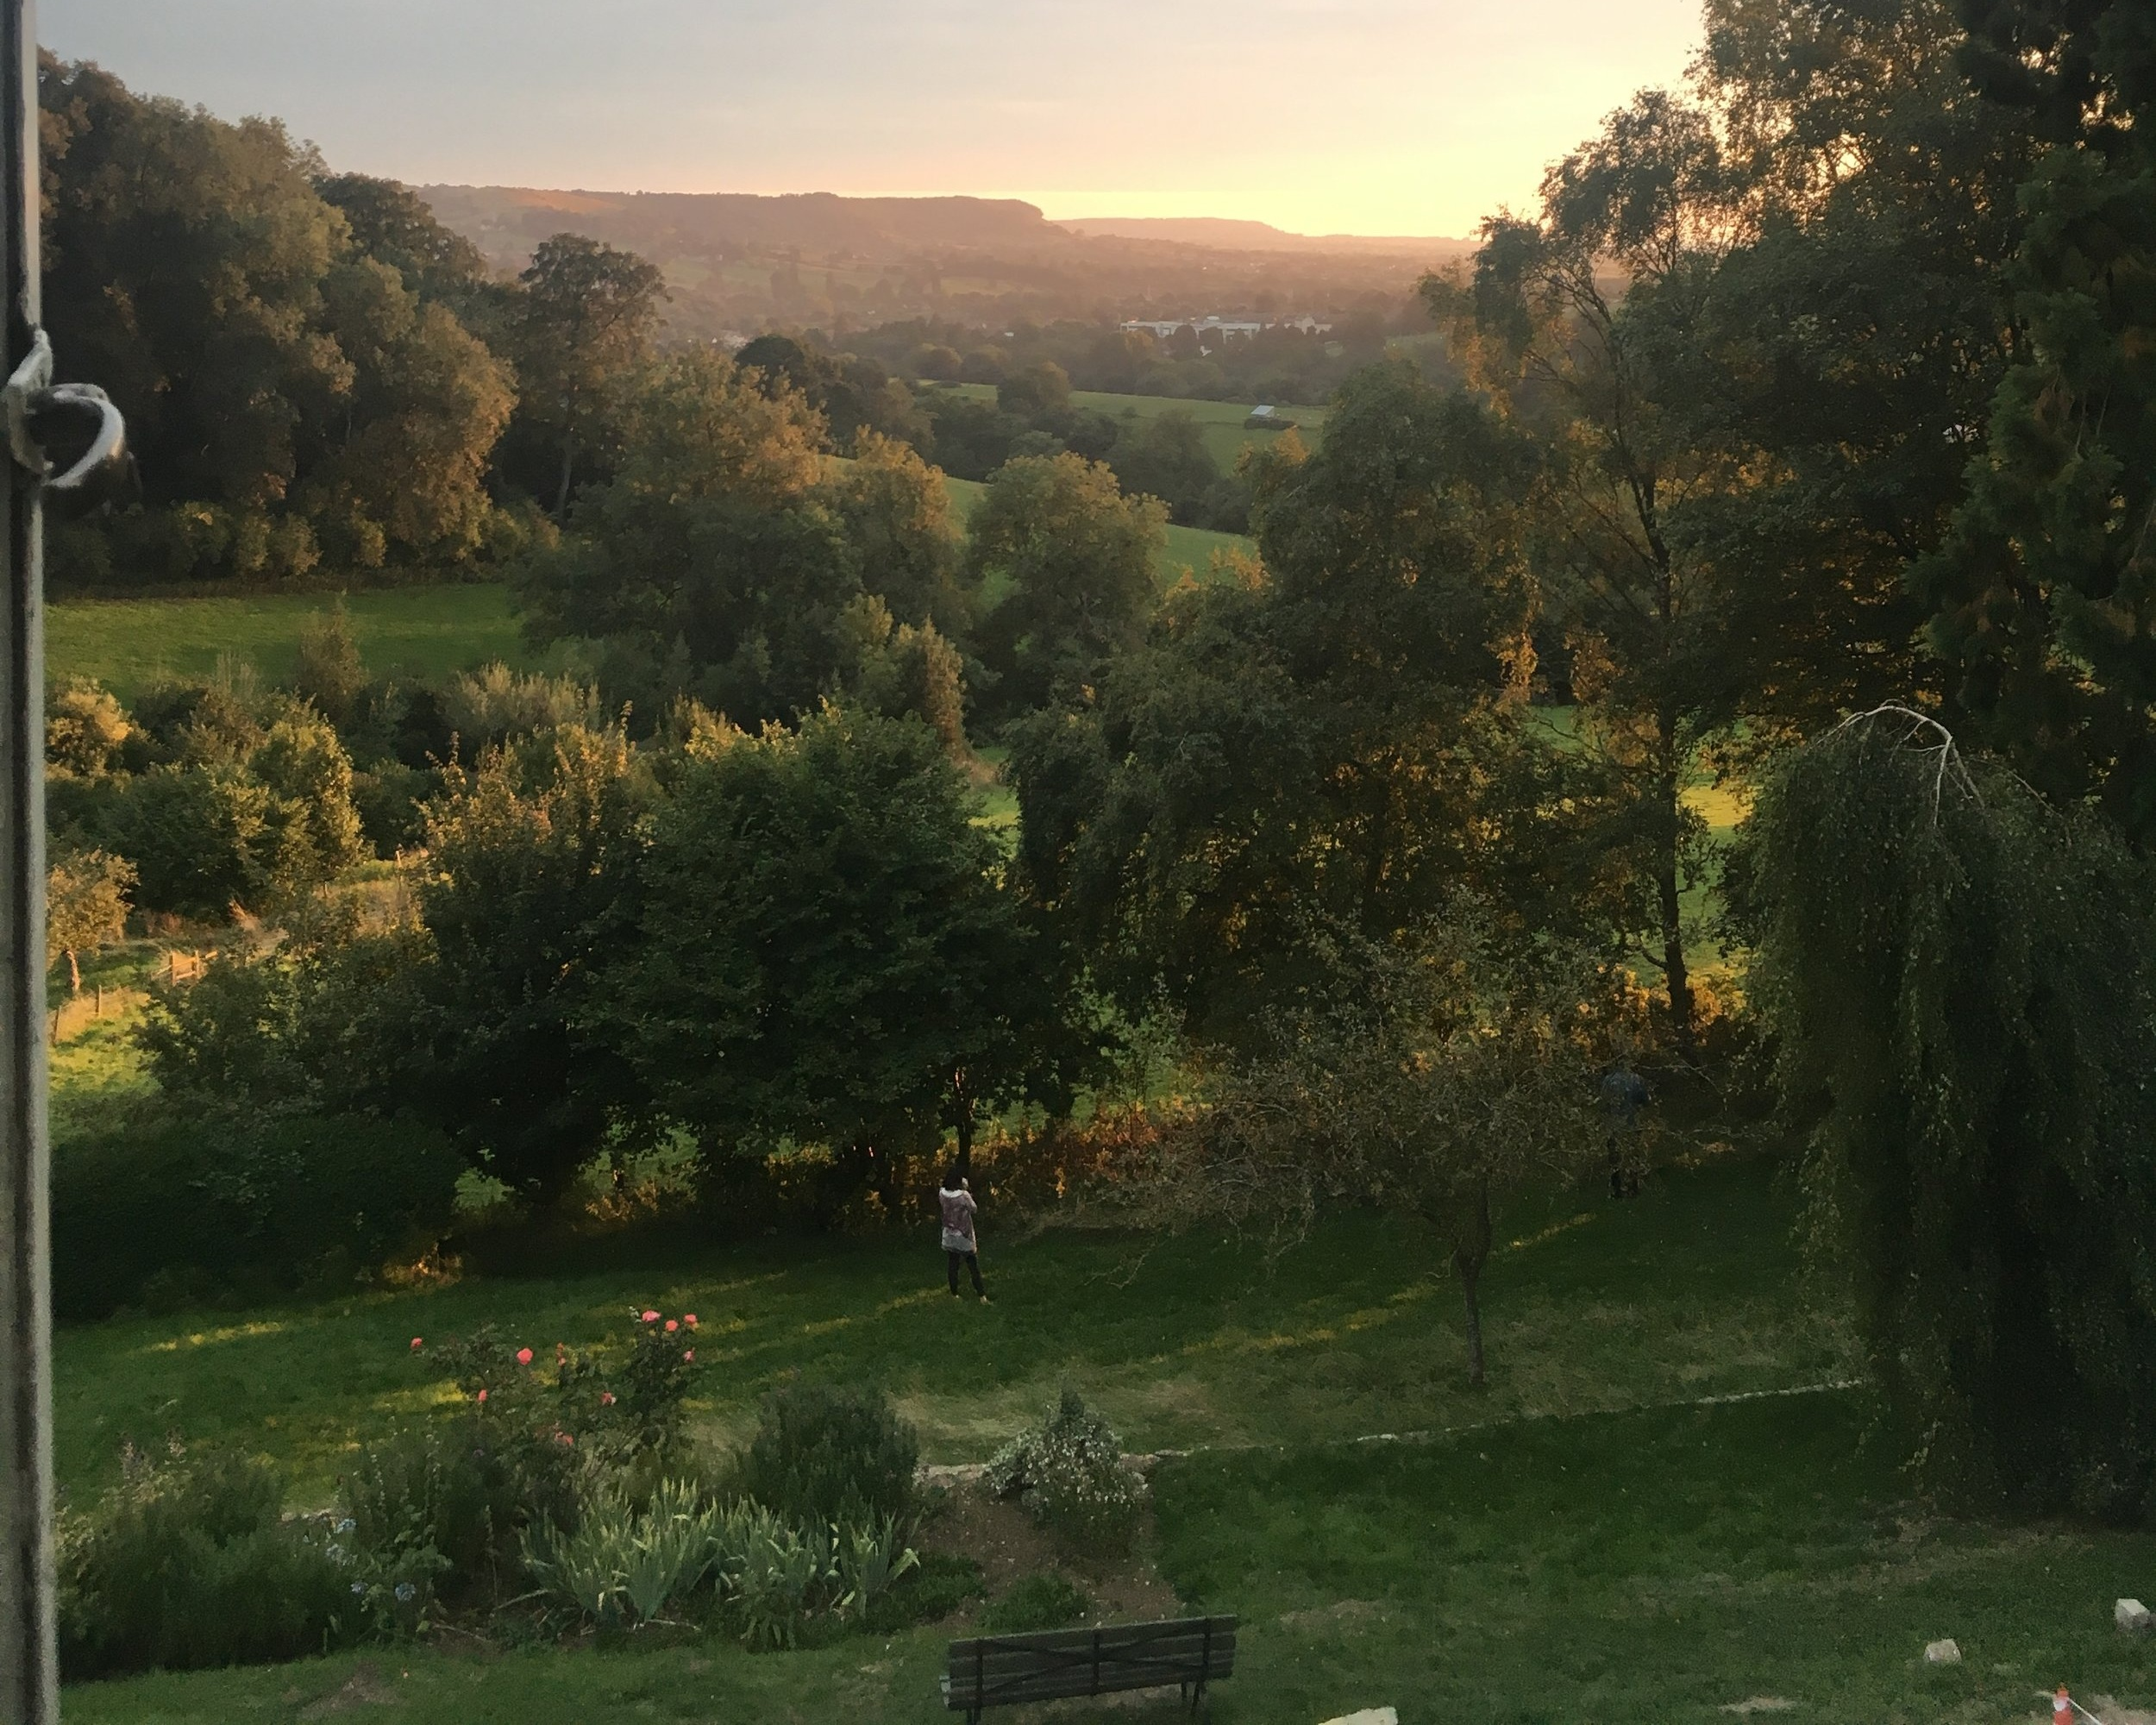 Rest and Restore - Friday 6th - Sunday 8th September 2019, Hawkwood CollegeJoin me for deep rest and relaxation on this retreat near Stroud. This retreat will offer you time and space to slow down, take breath, and prepare for the journey from summer into autumn.Find out more